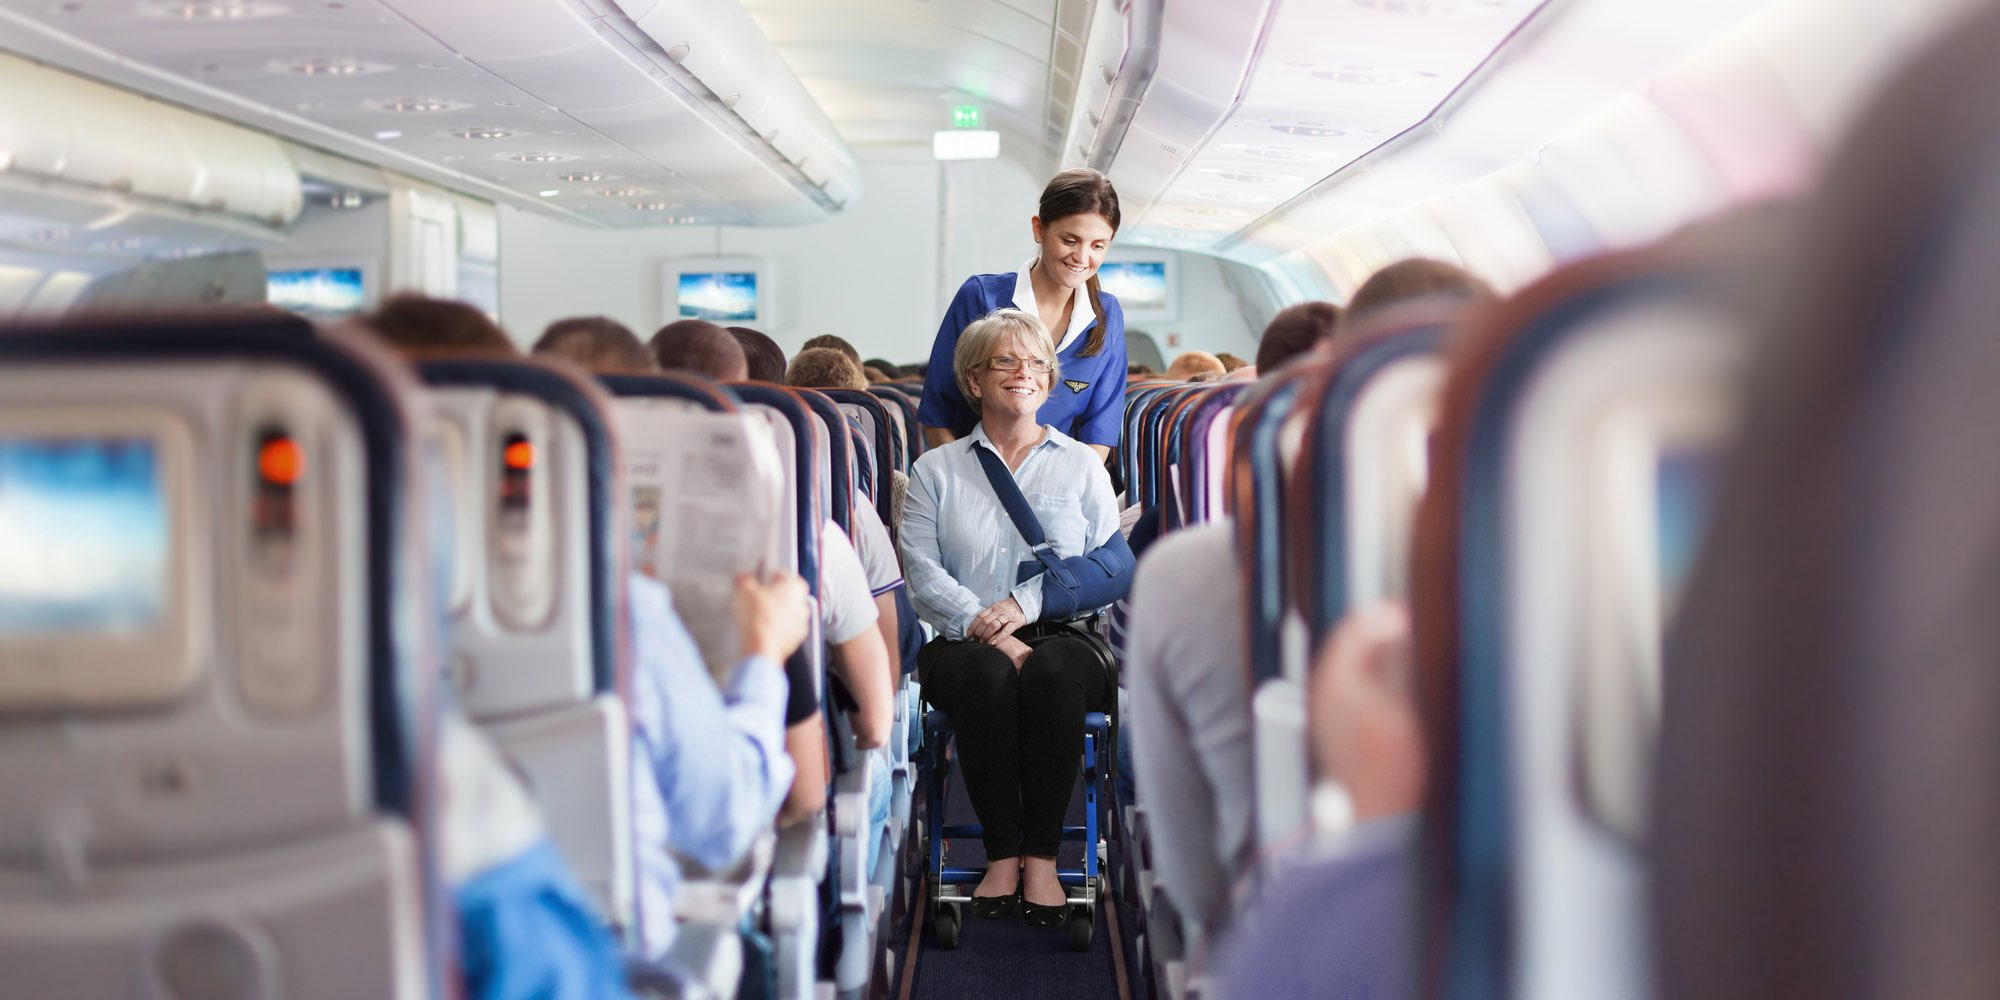 Airchair in use on-board aircraft